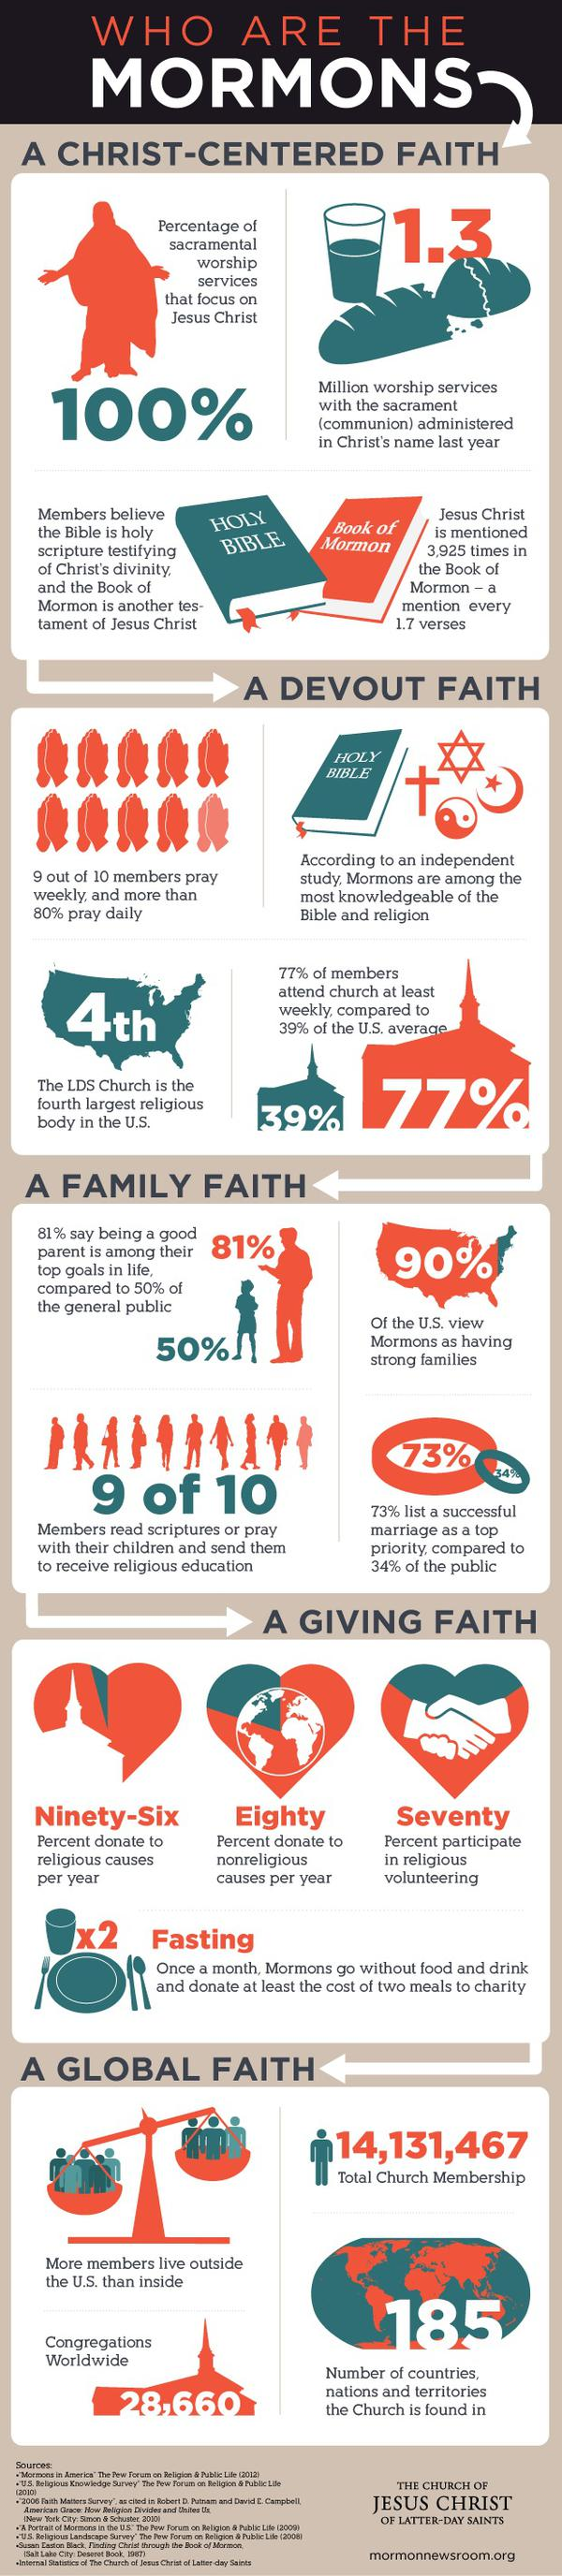 Mormon infographic -- FAQs and Facts about Mormonism